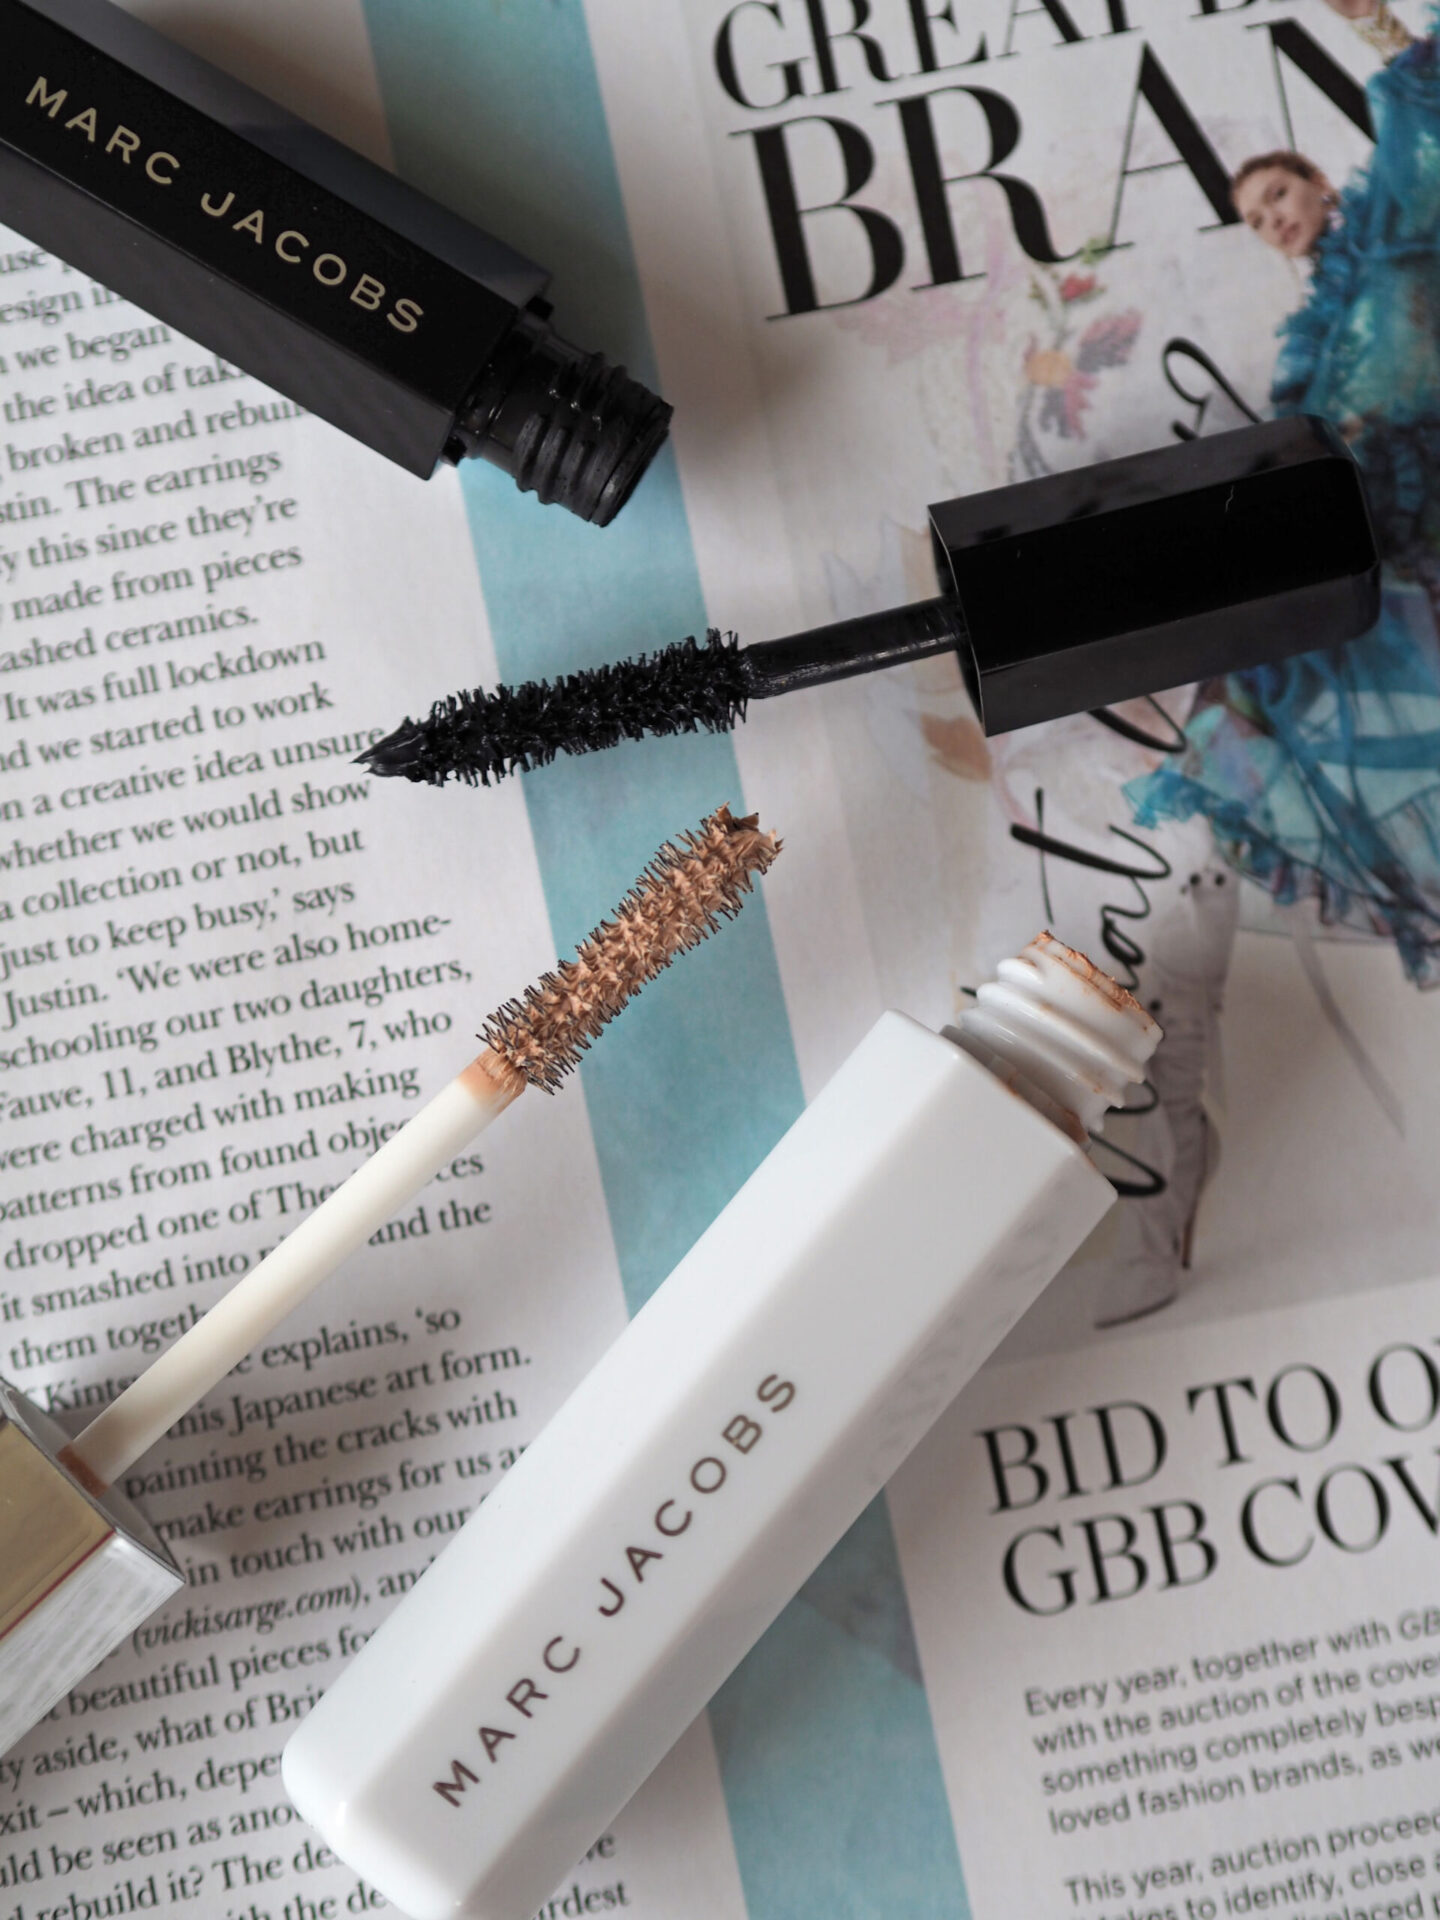 marc jacobs mascara review